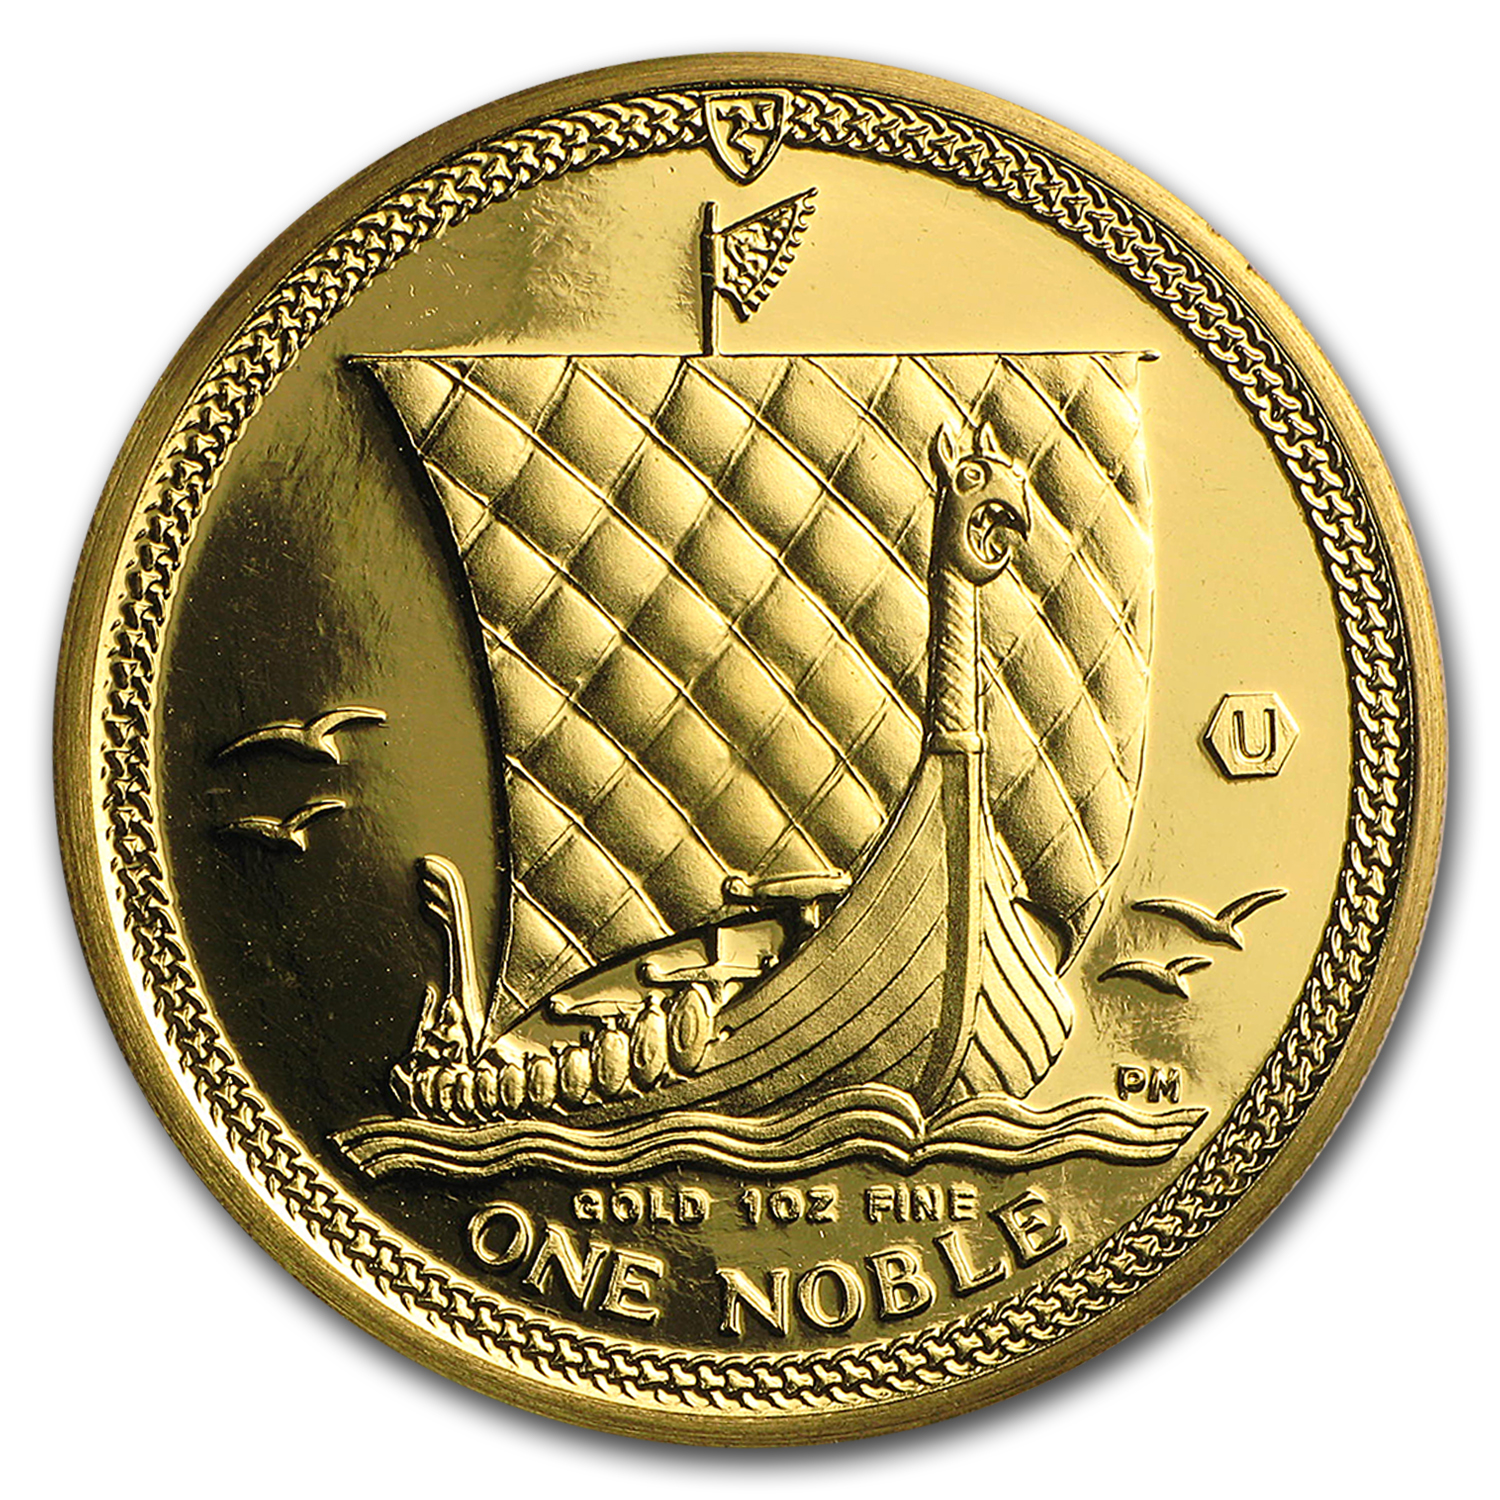 2016 Isle of Man 1 oz Gold Noble BU